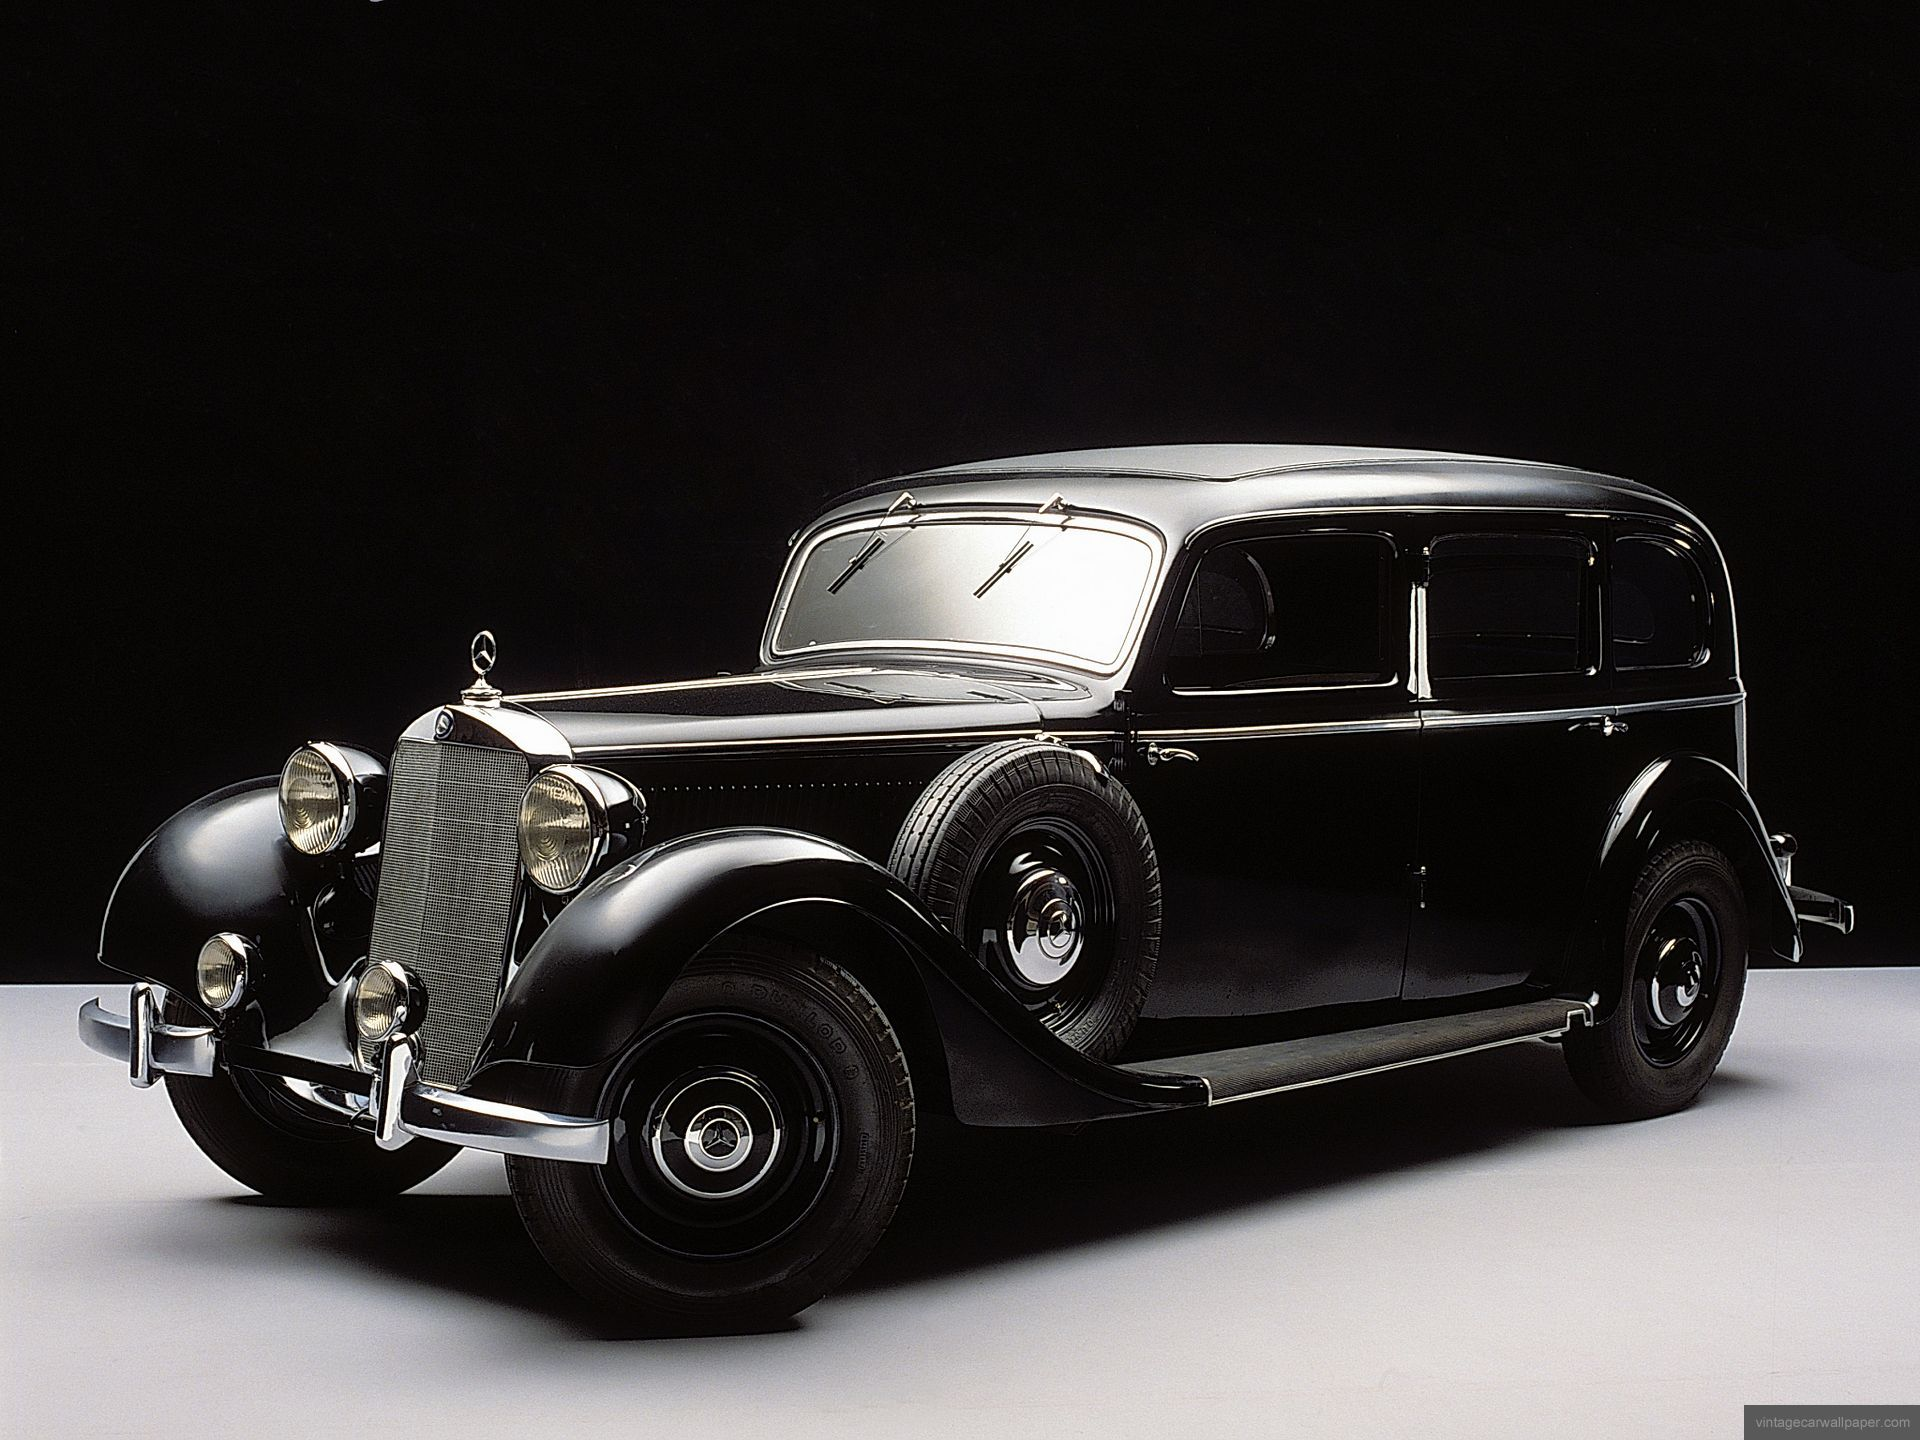 Vintage car wallpaper 1920 1950 years mercedes benz 260d pullman ...